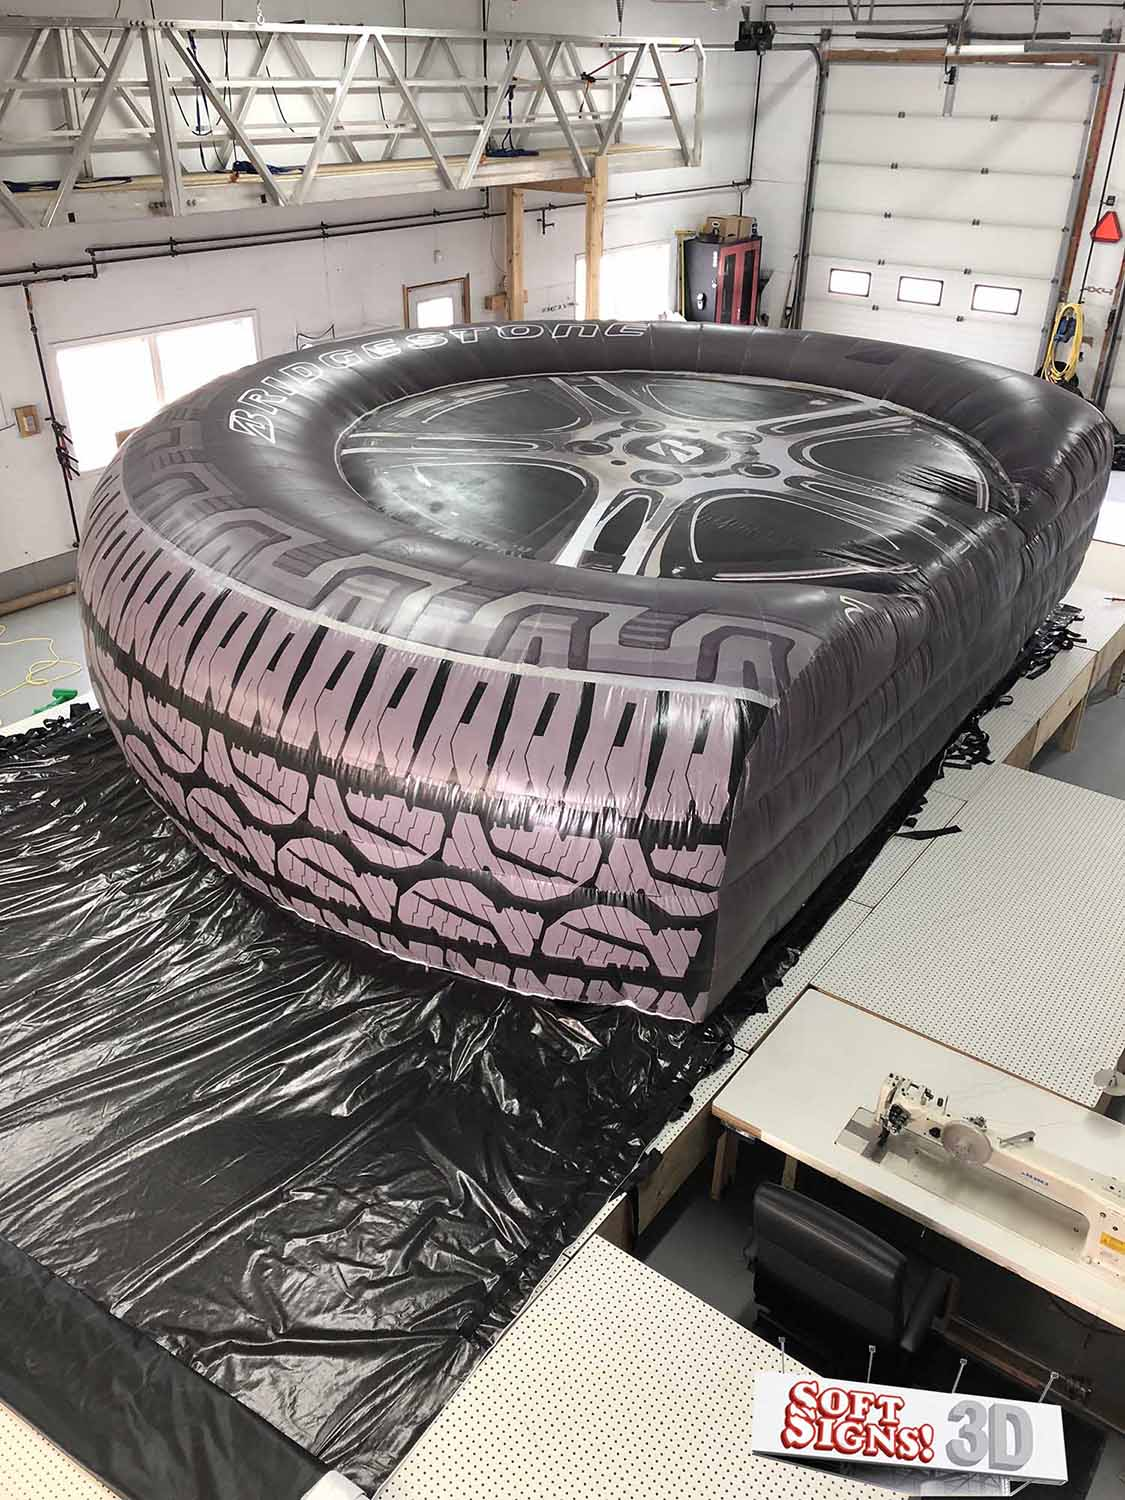 Bridgestone Tire 3D Billboard Install process